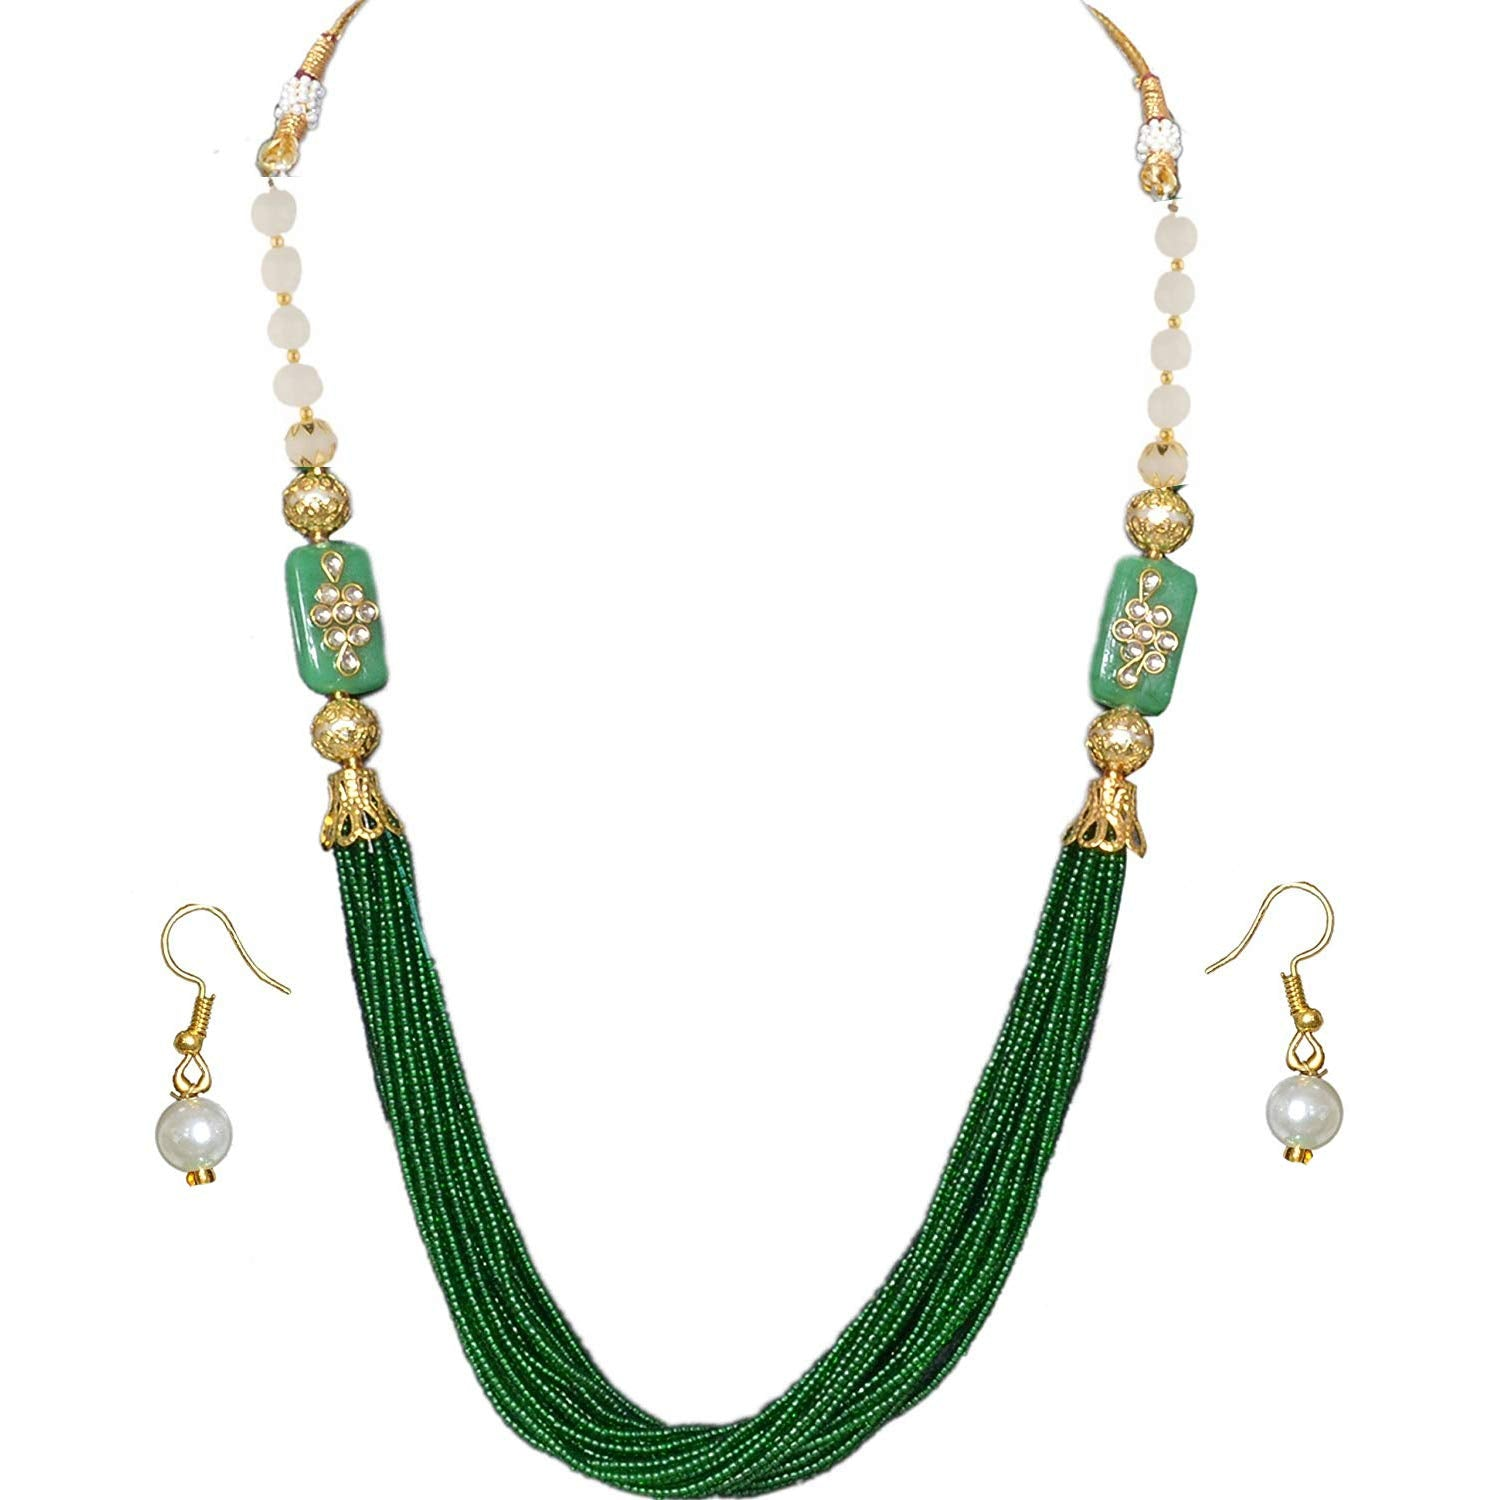 Multilayer Beads Work Traditional Necklace Earrings Set (Green) - Bagaholics Gift